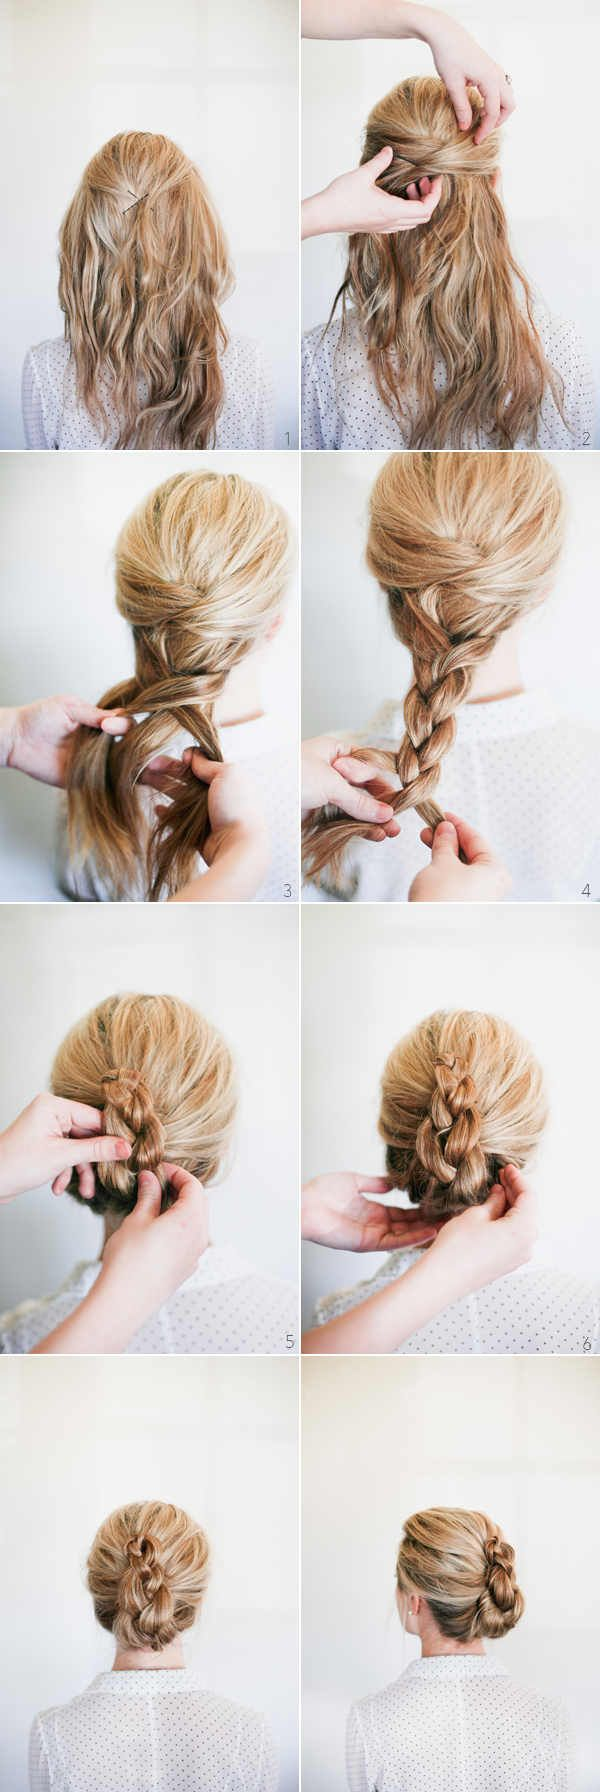 10 Easy, Feminine and Elegant Wedding Updo Hairstyles with Steps ...